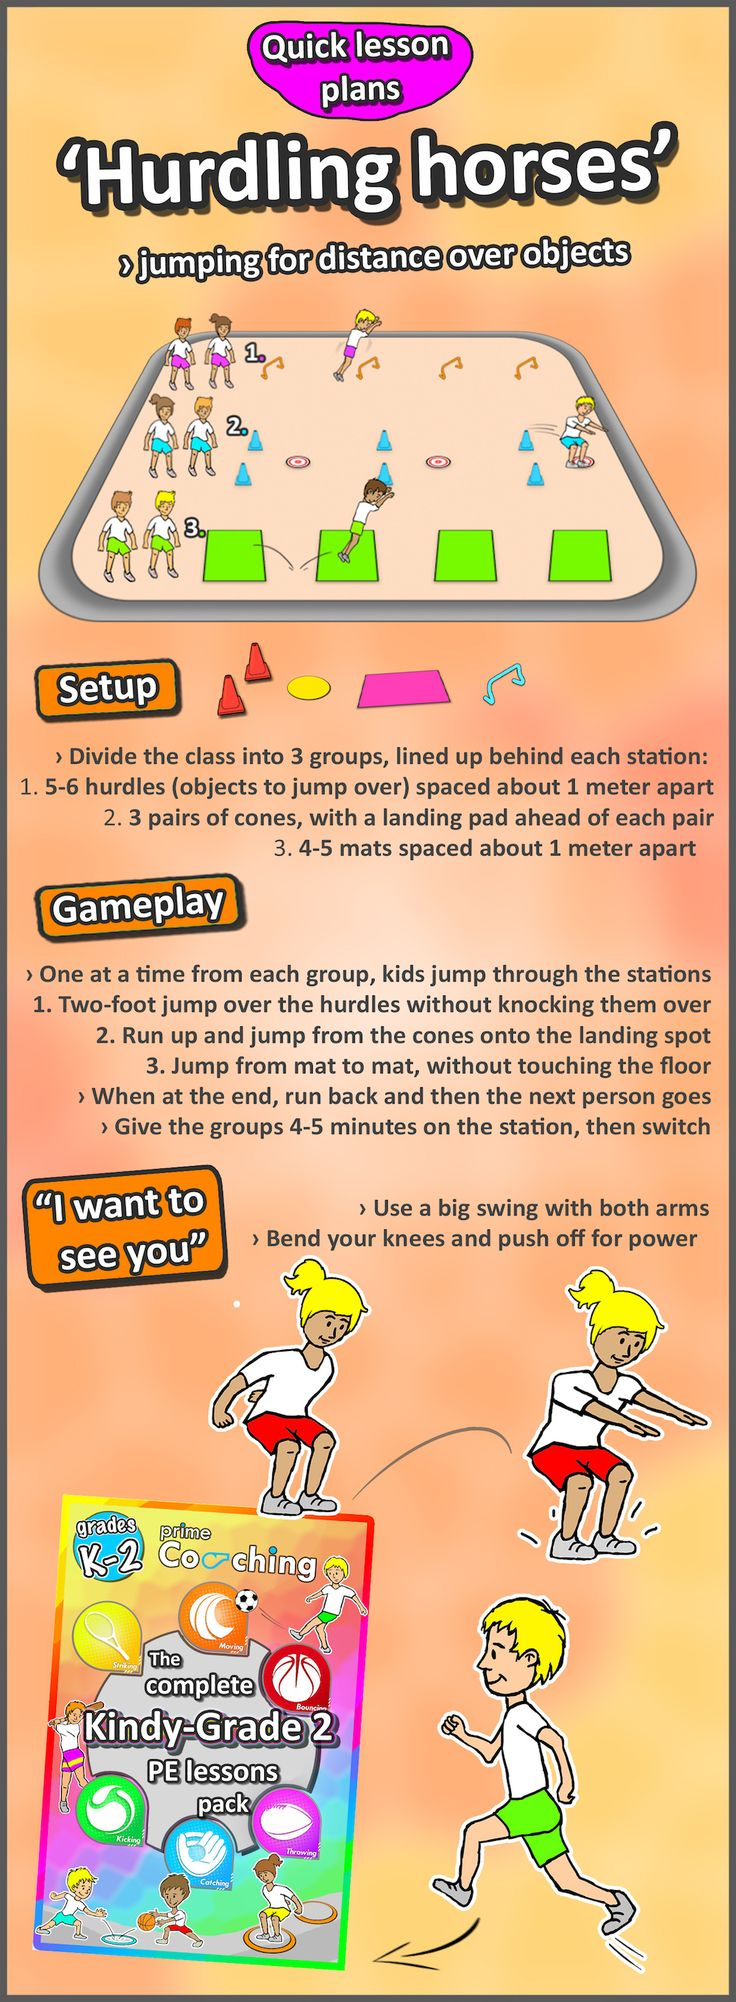 A quick lesson plan to help your kids with their gross-motor movement skills - teach it in your next PE lesson! Check out our blog for most awesome help on teaching PE and sport in your school